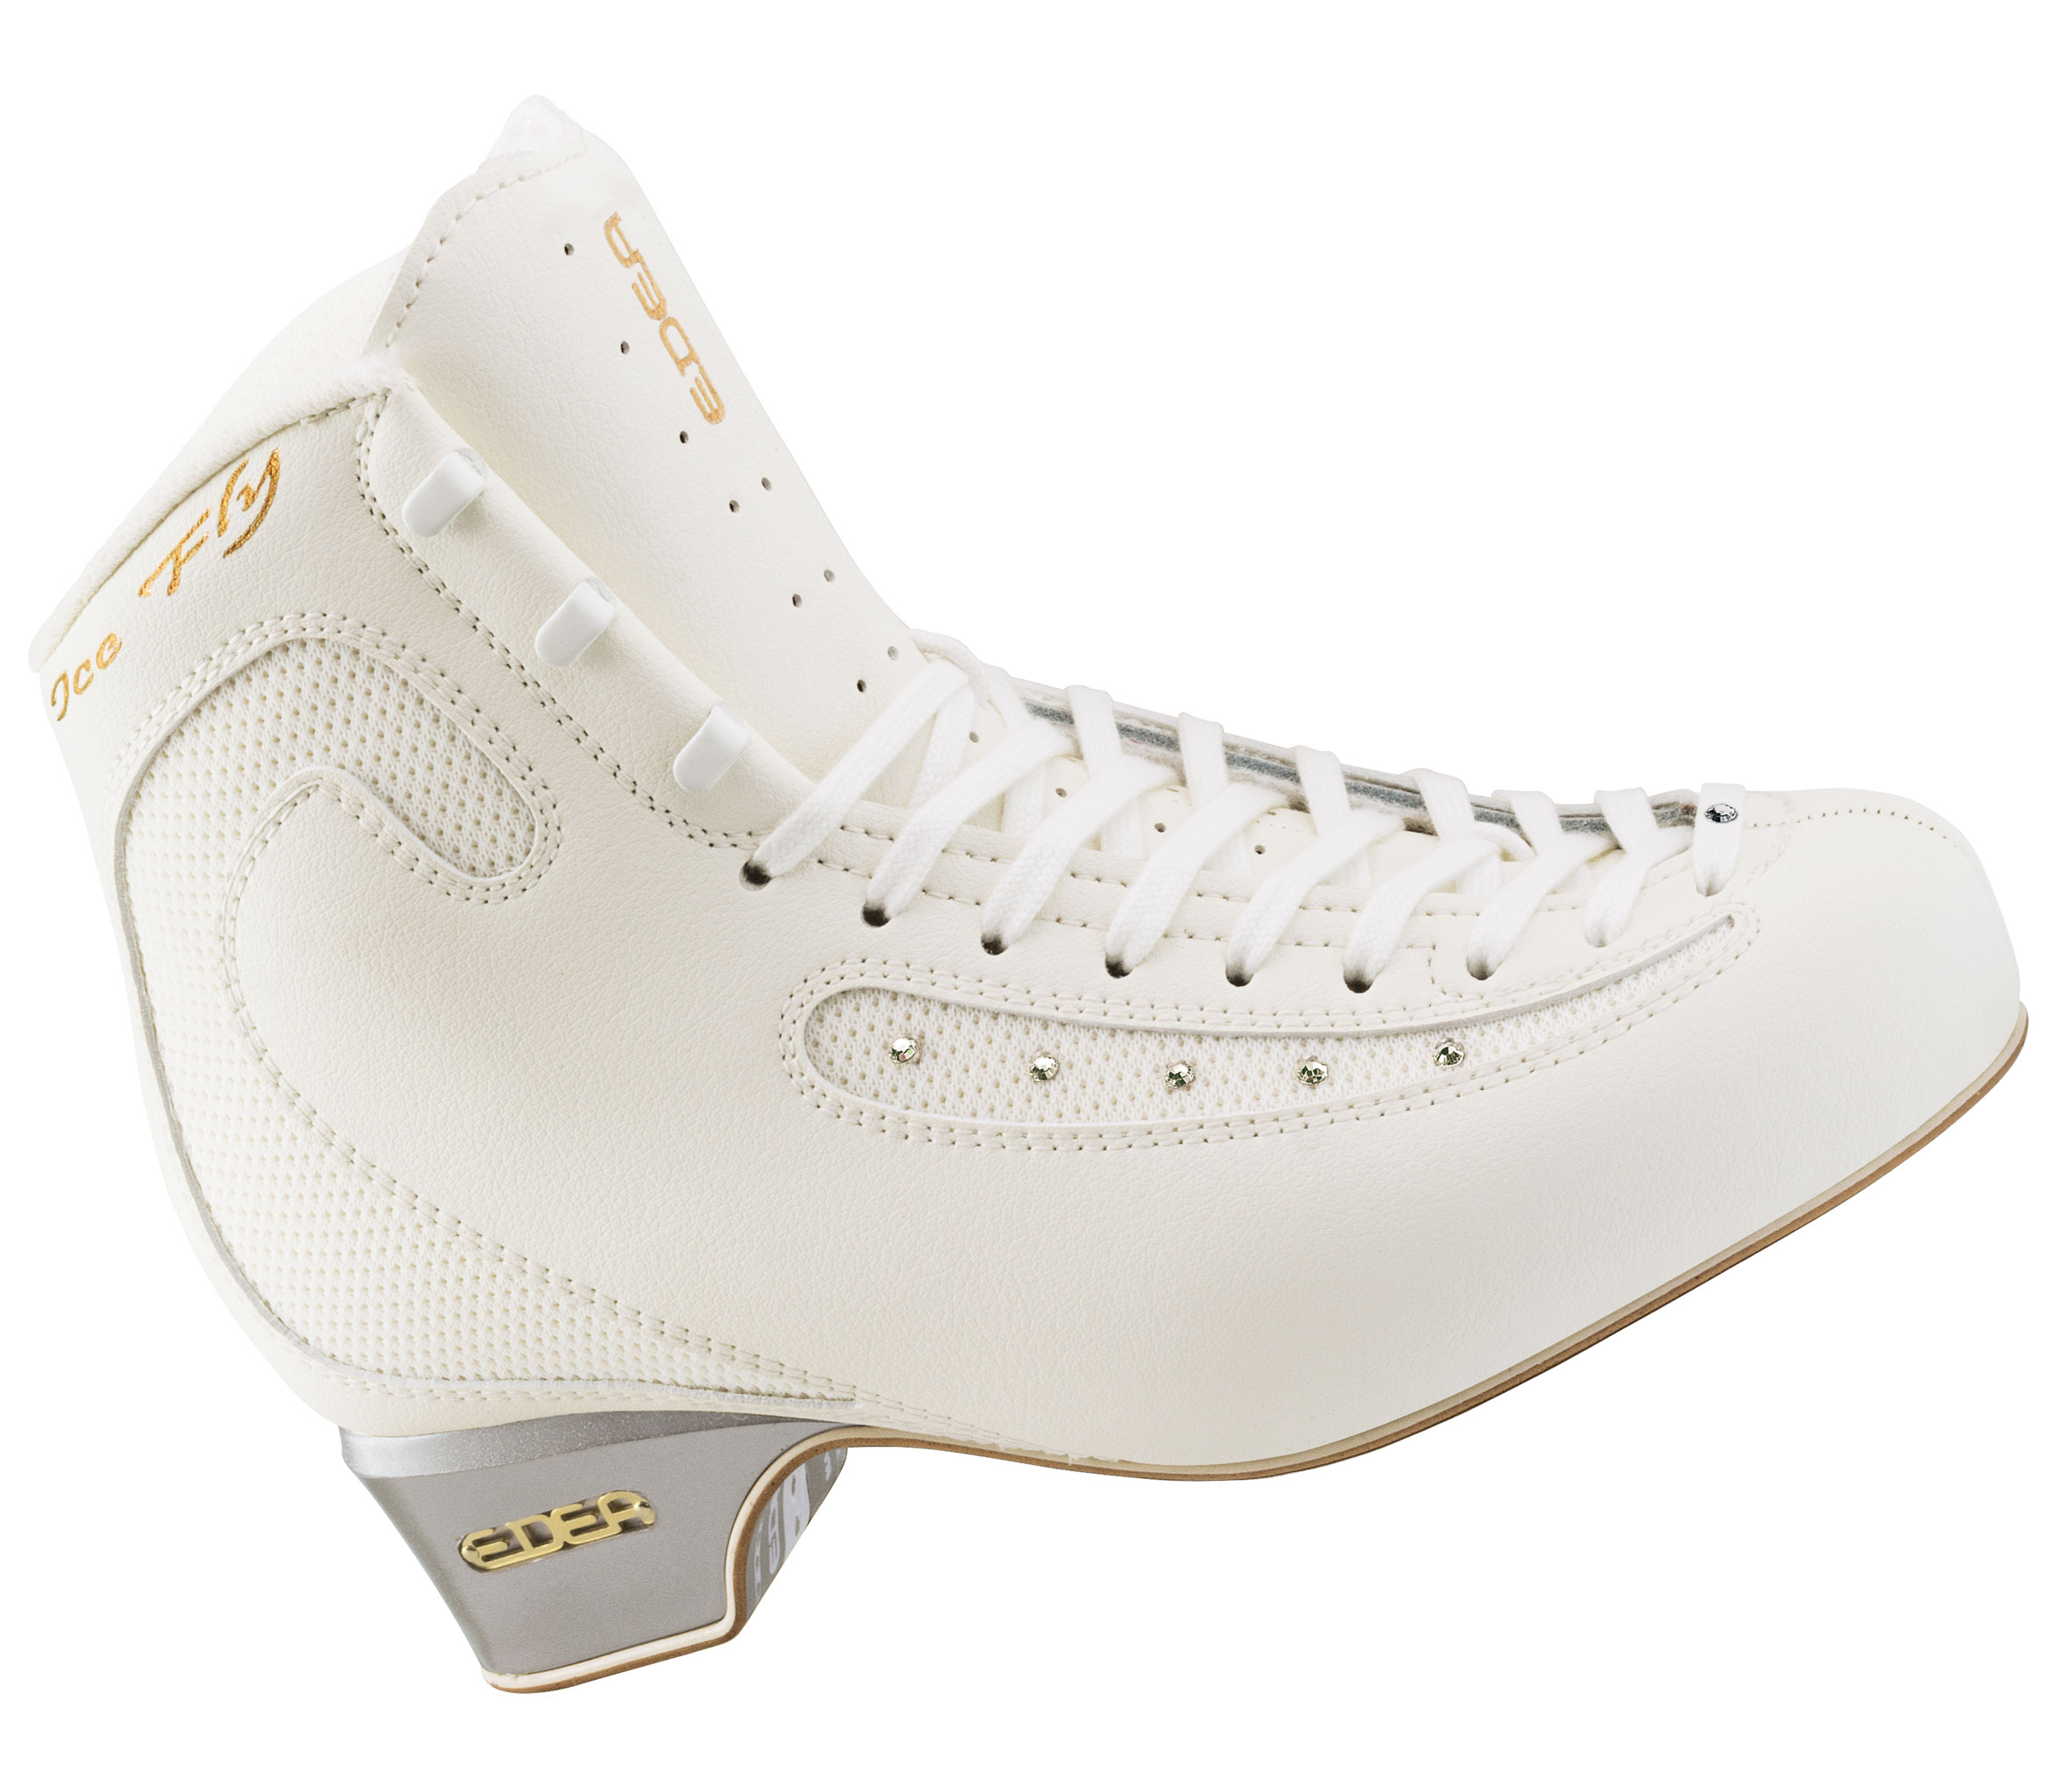 Skates & Boots - Authorized dealer for Edea, Jackson, Riedell and Harlick